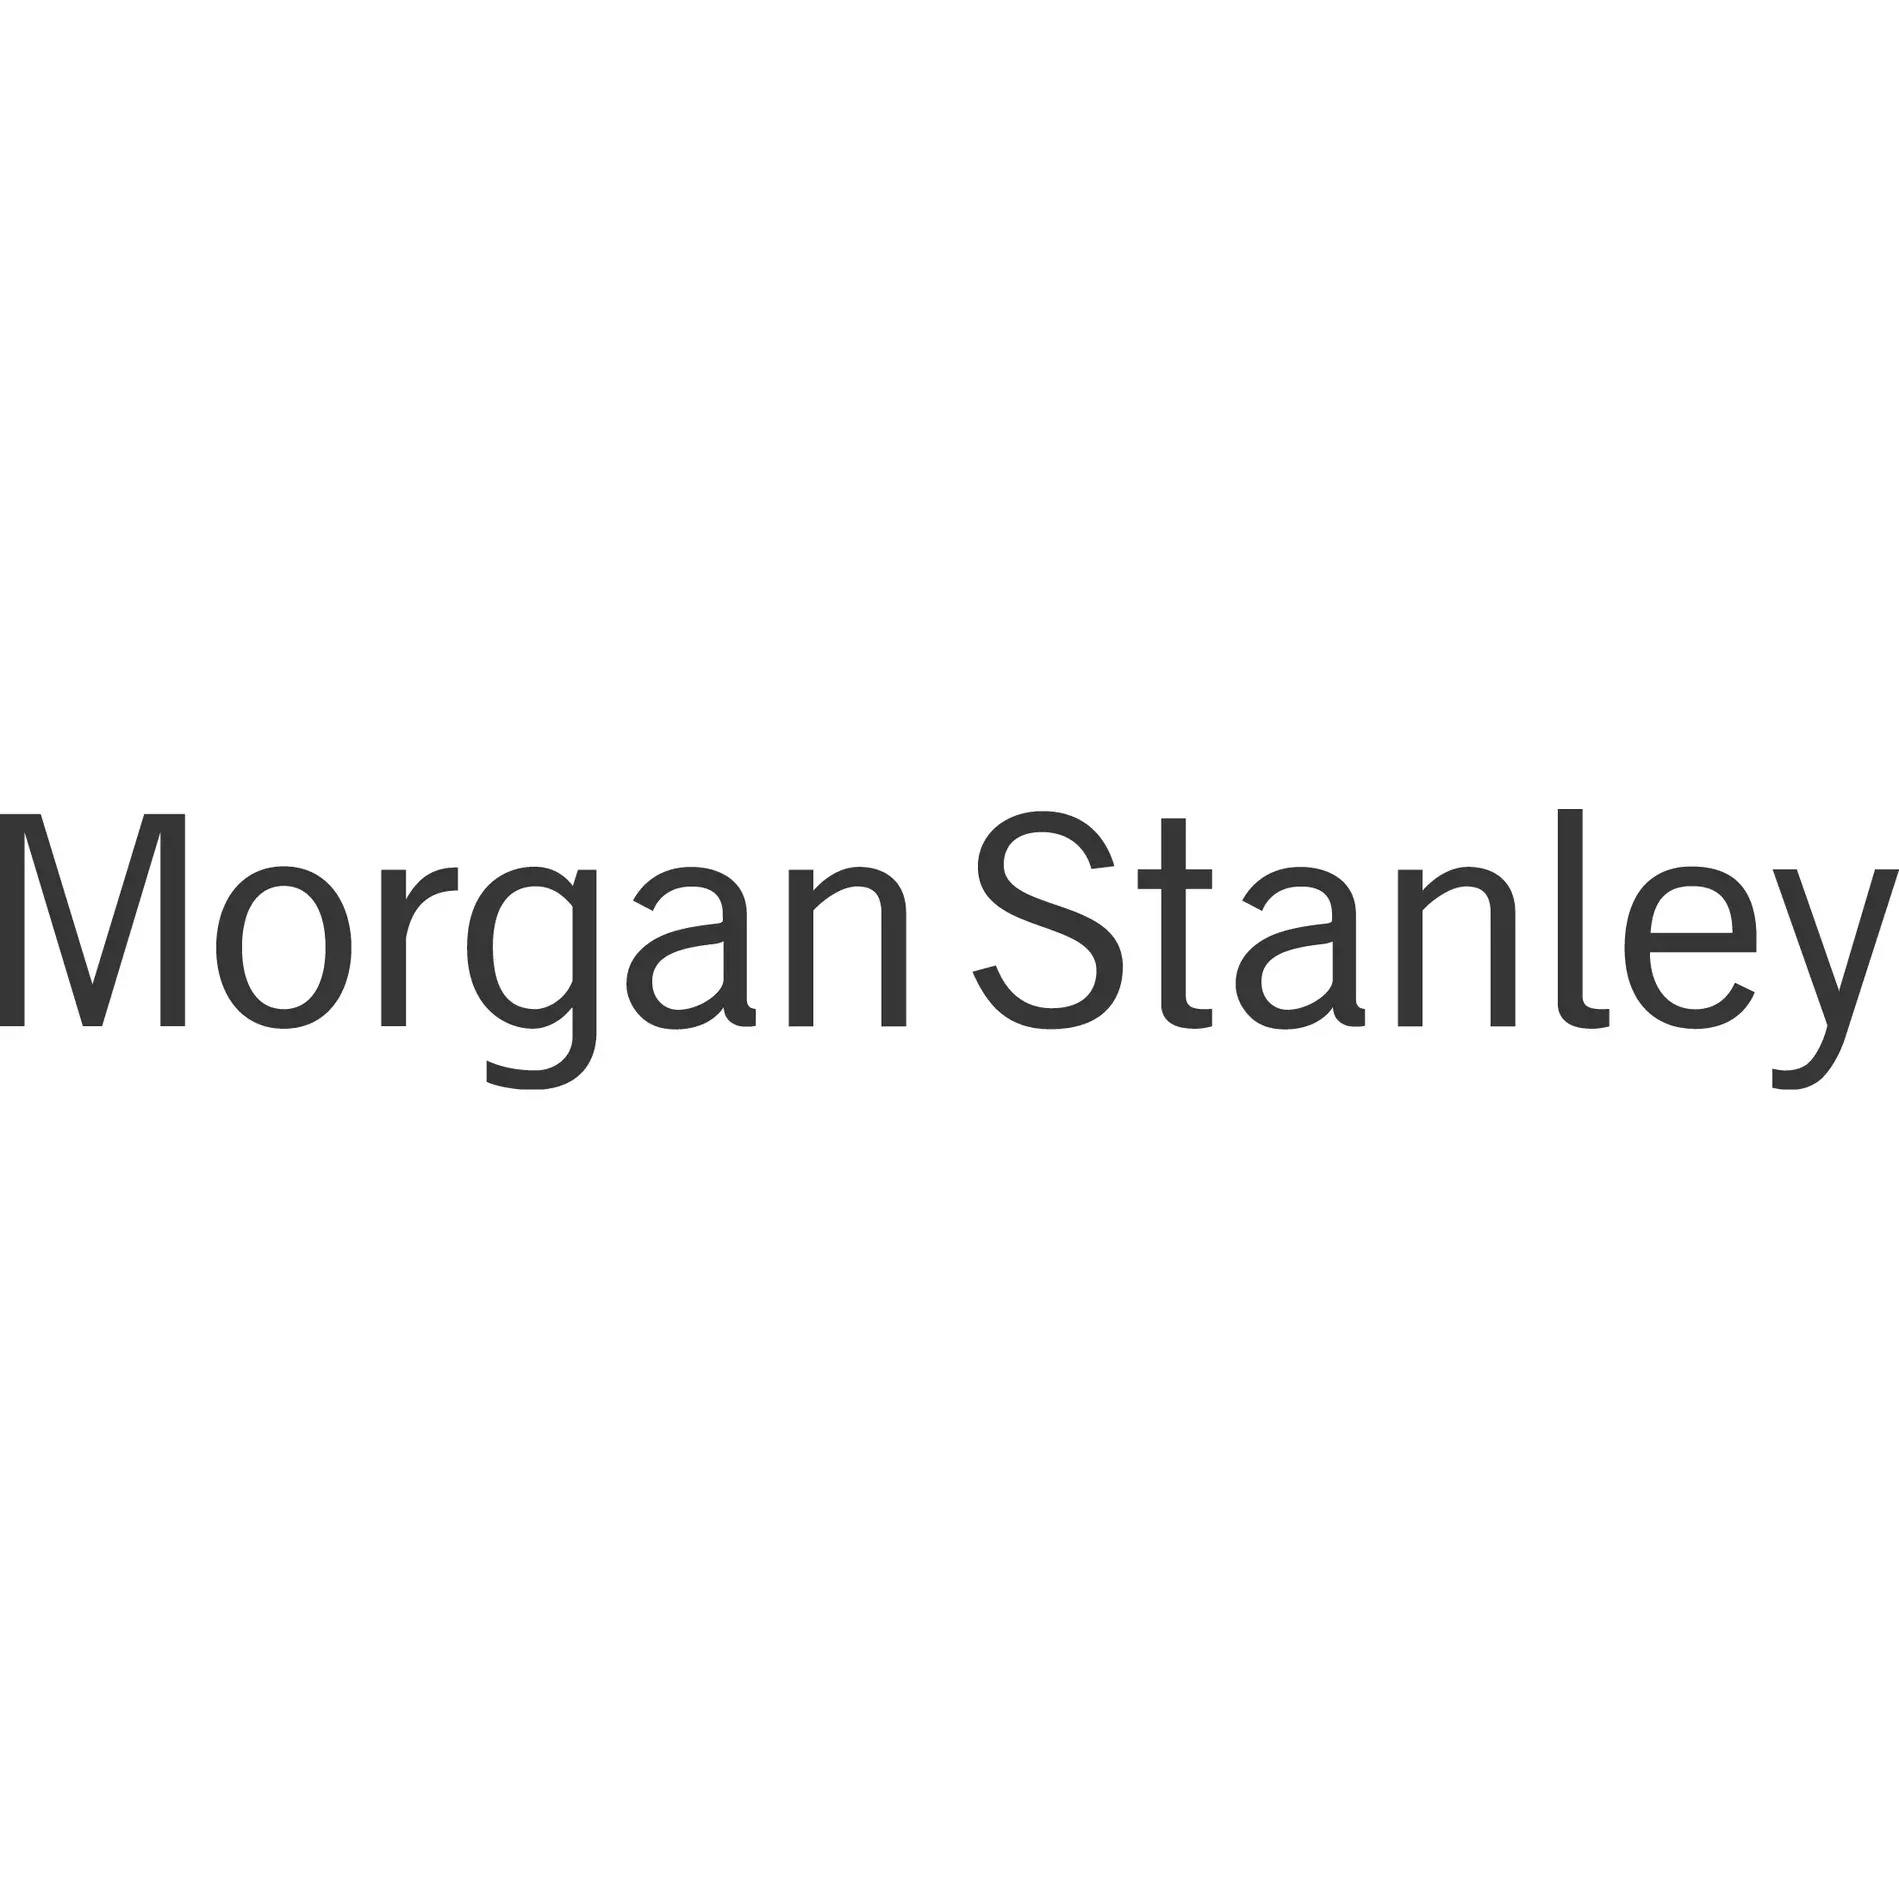 Alexander Blair - Morgan Stanley